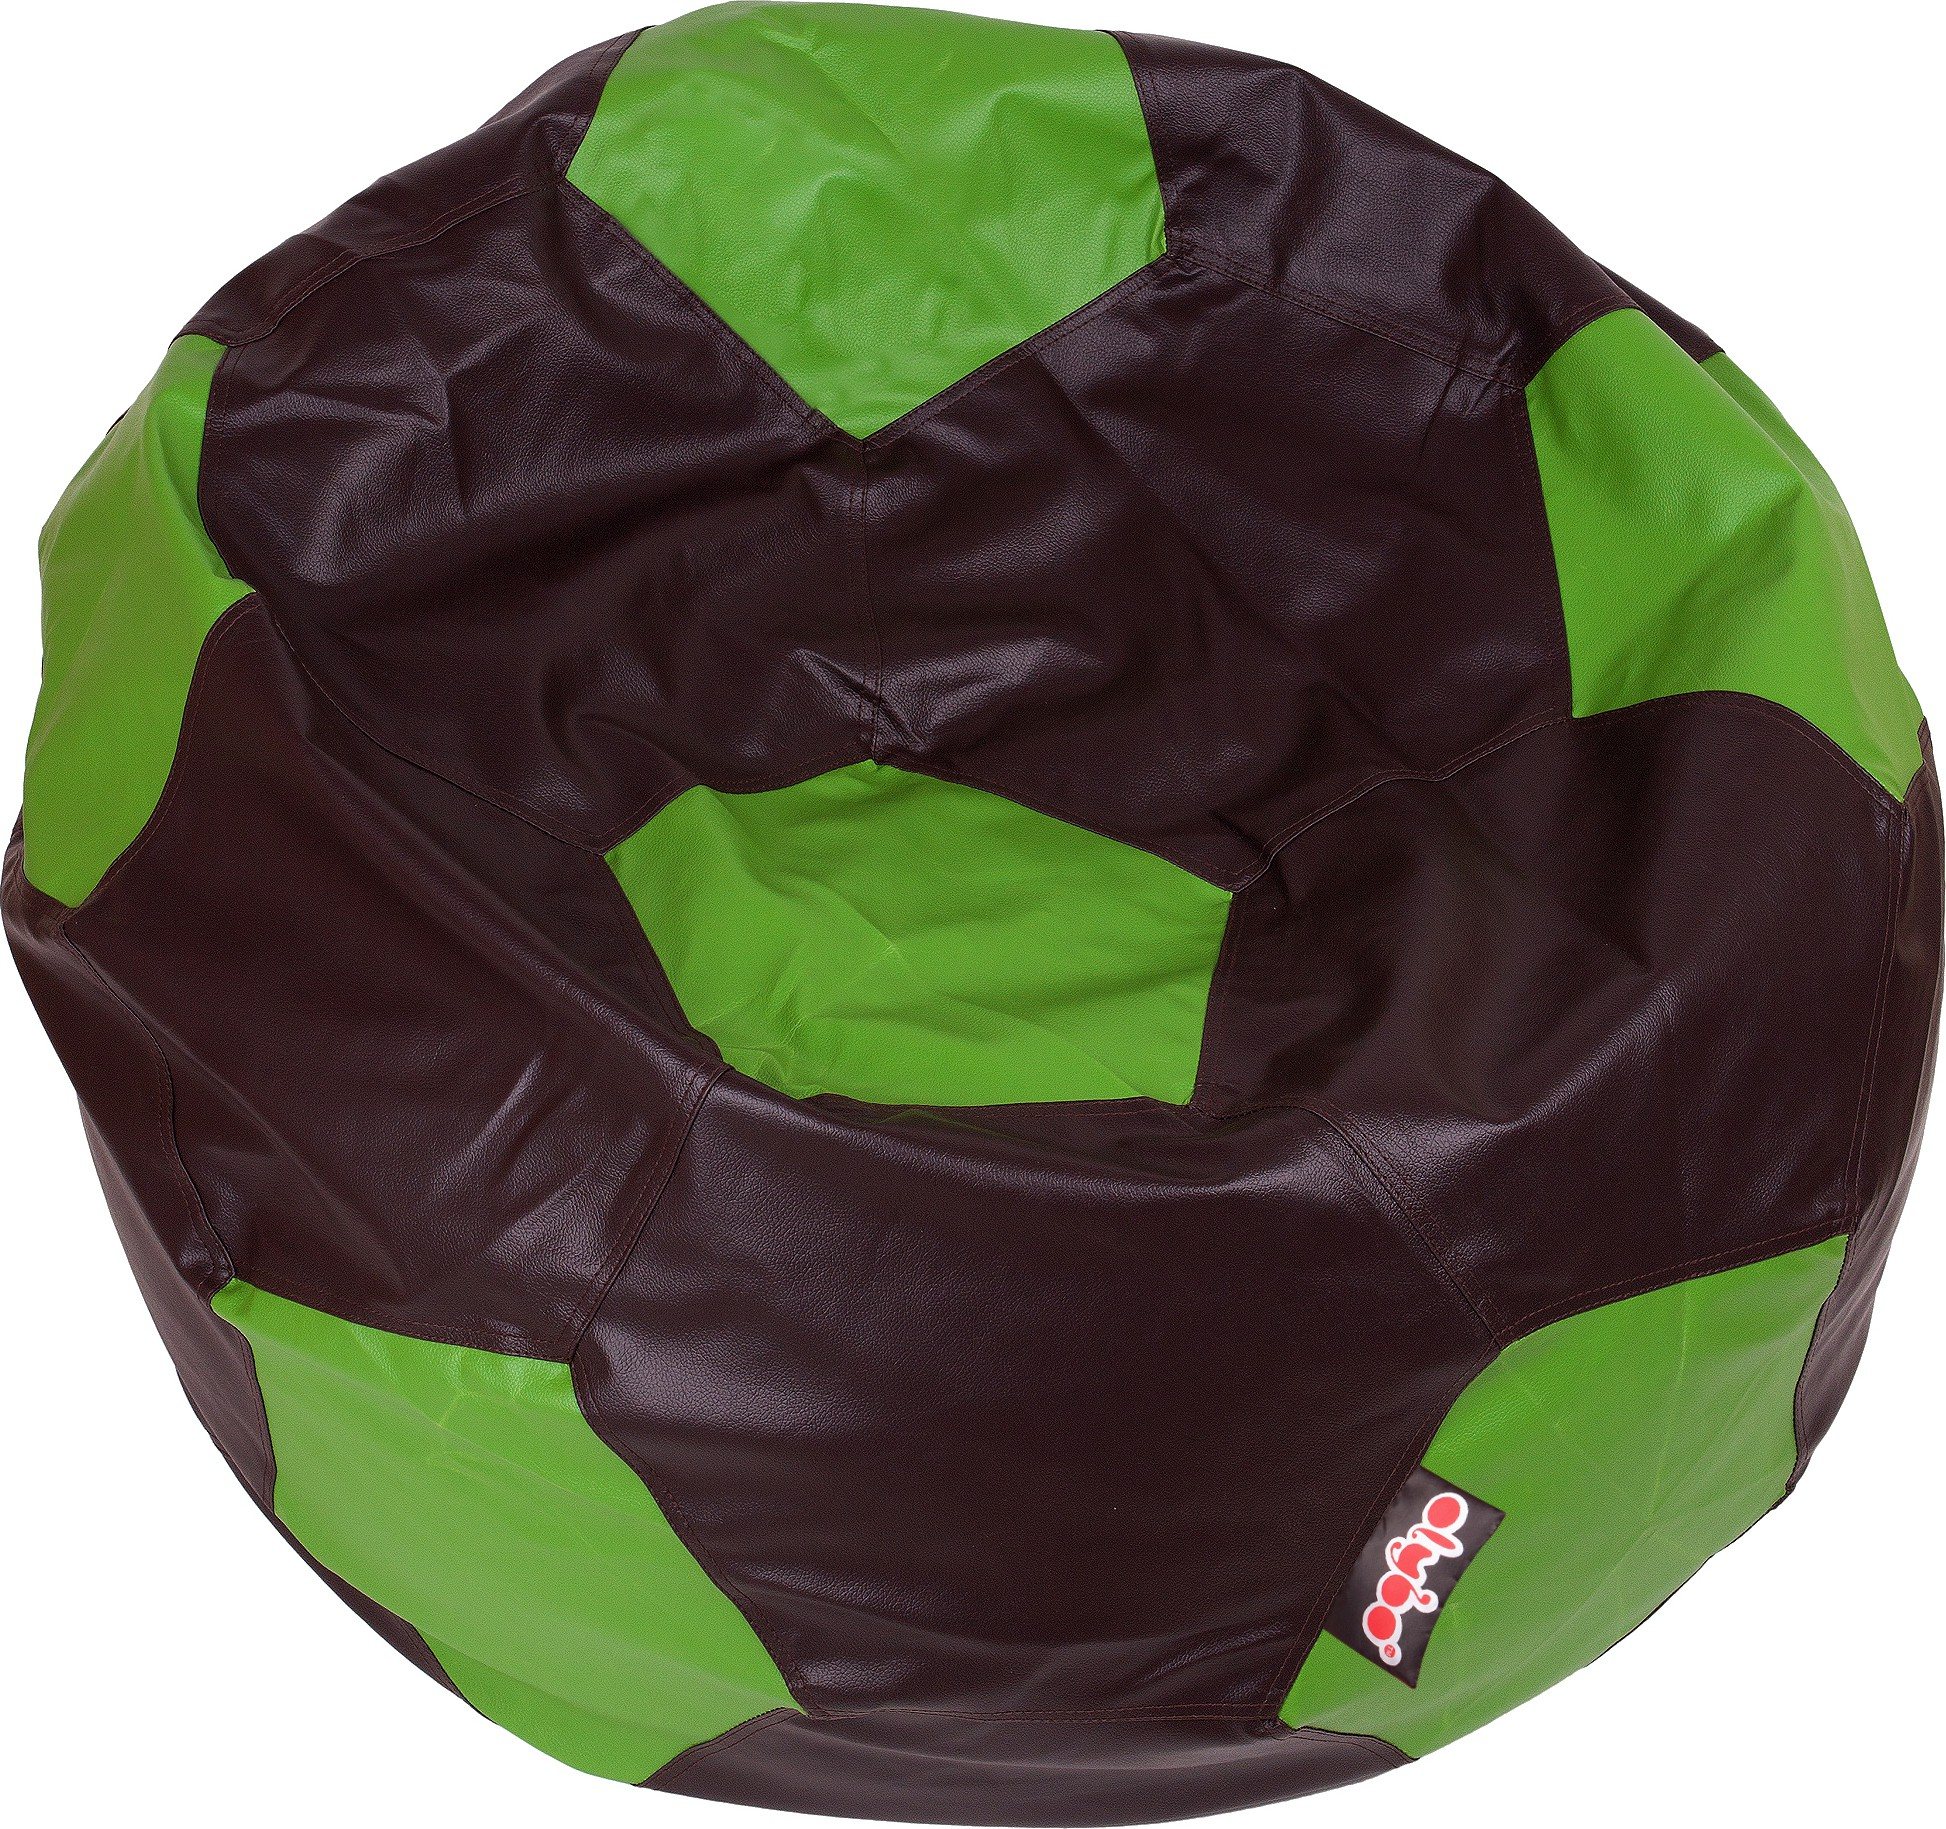 View Olybo XXL Bean Bag Cover(Green, Brown) Furniture (Olybo)